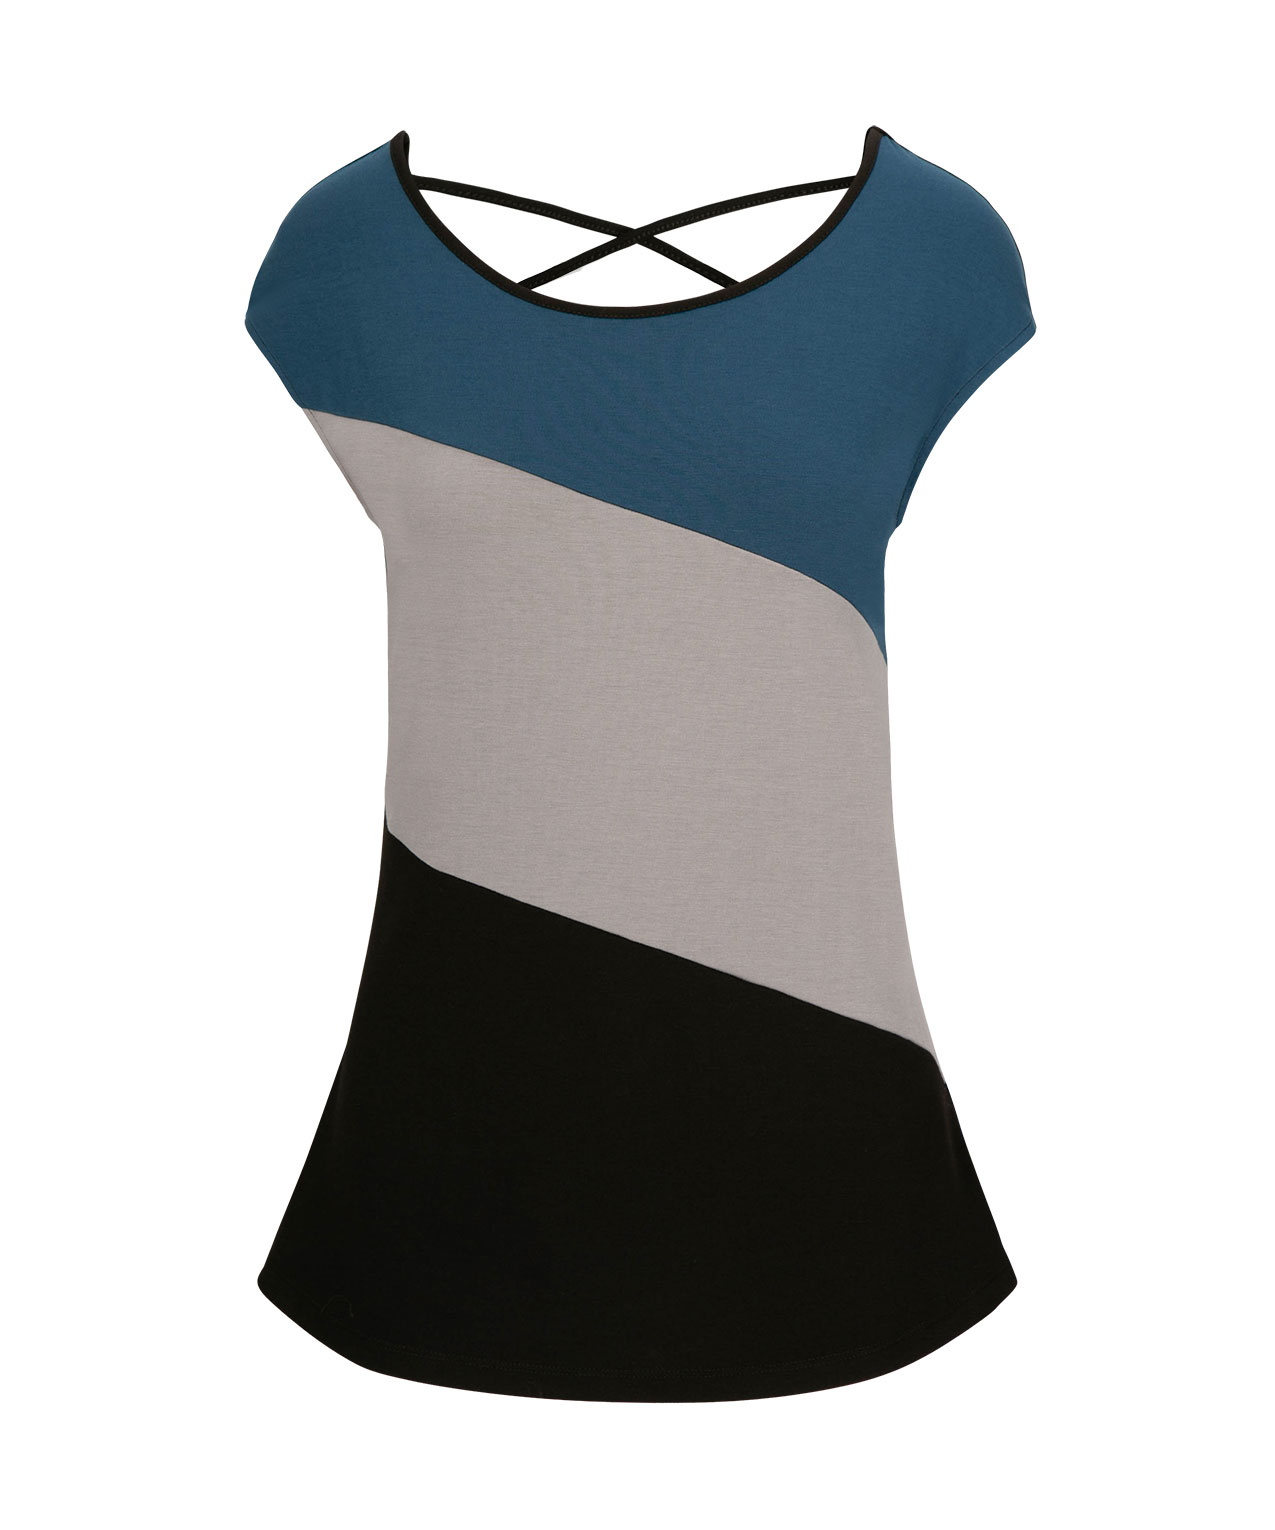 ed8a616dc1f5 Colour Block Cross Back Top